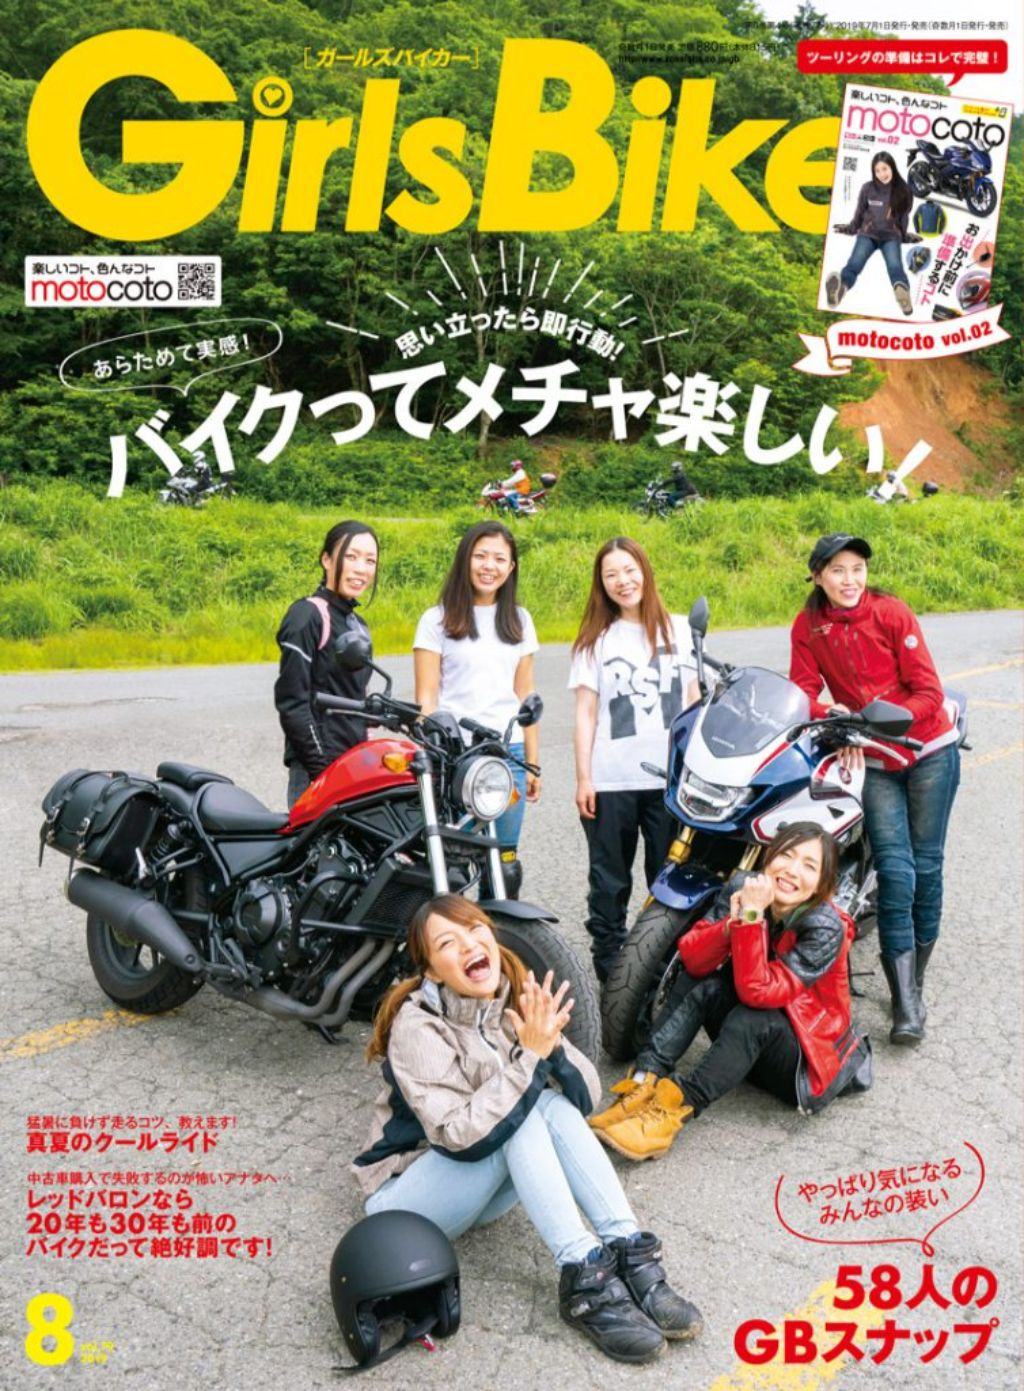 Zokeisha Girls Biker 2019 August Issue